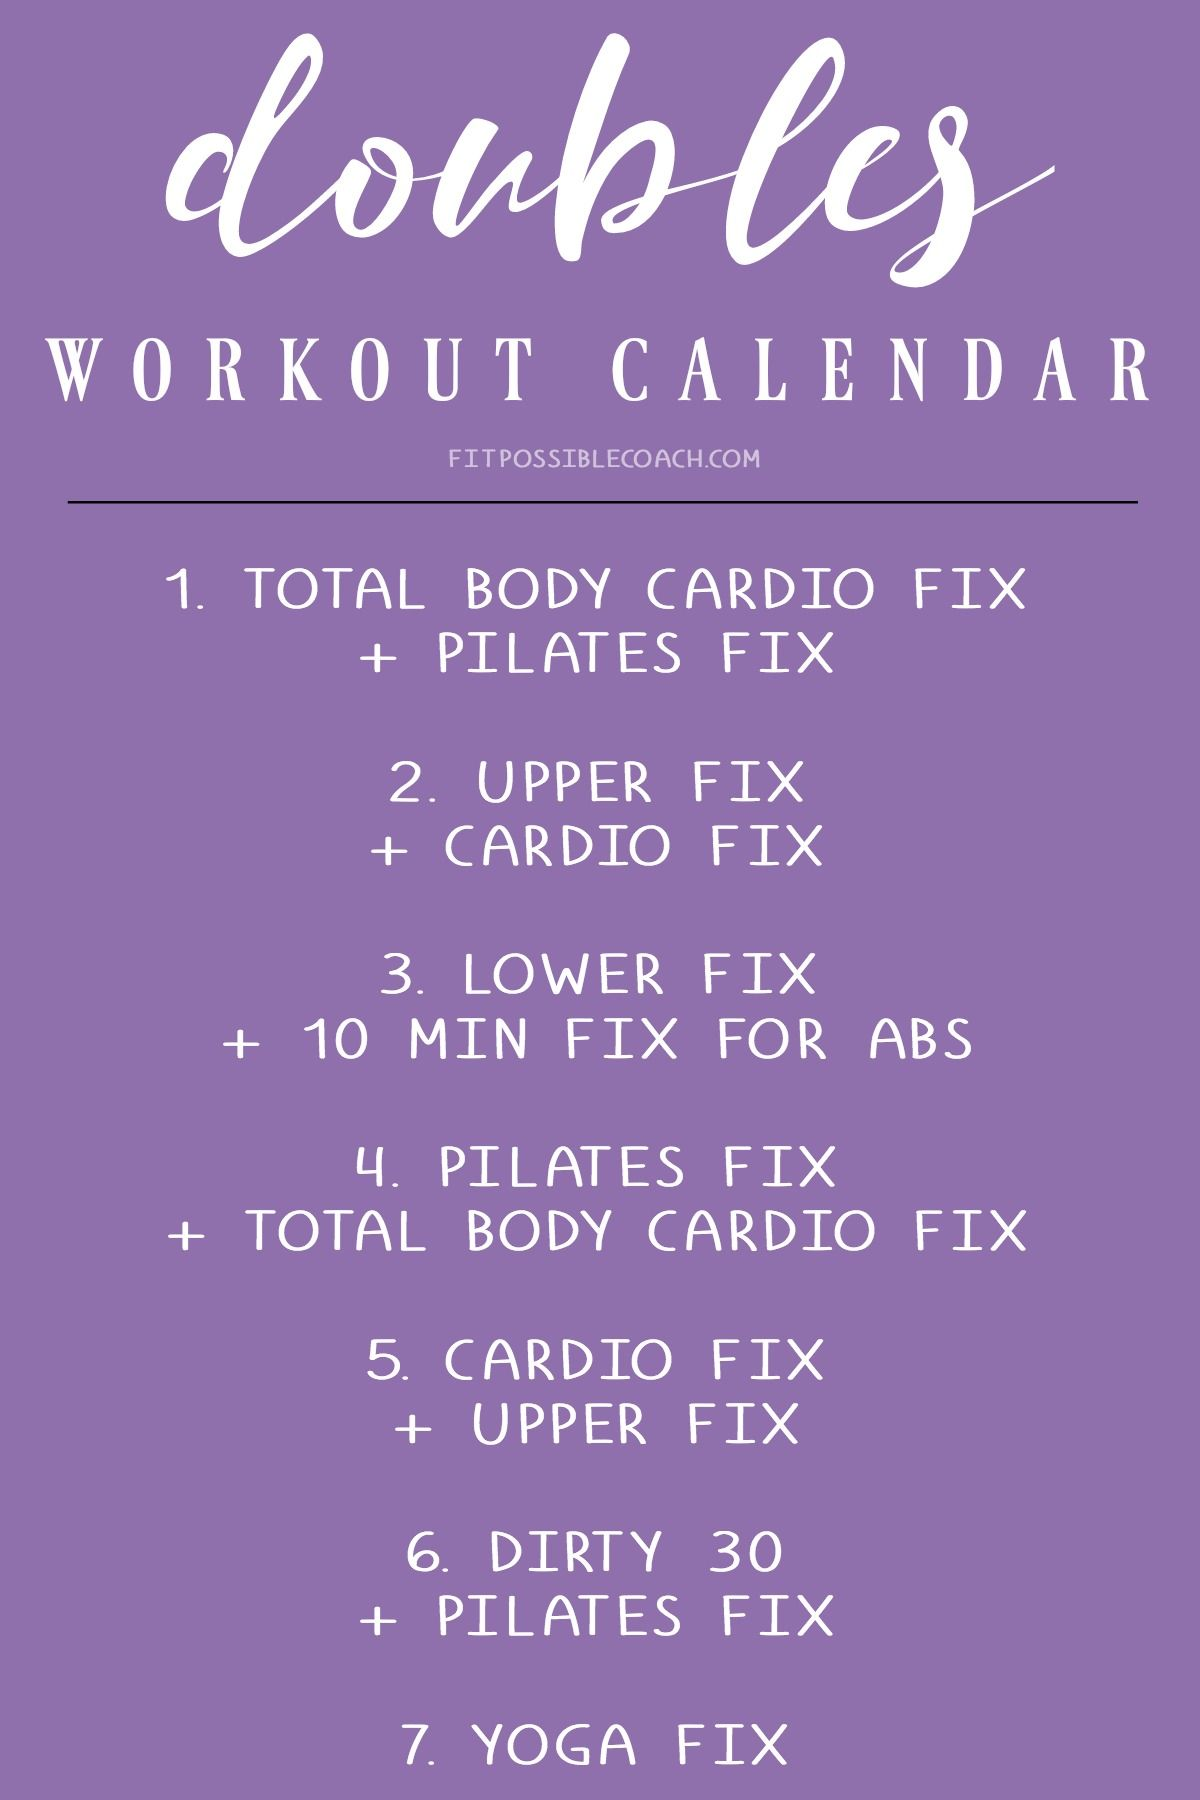 21 day fix doubles week workout calendar this can be done on week 3 of the 21 day fix or you can do it as a 4th week of the 21 day fix